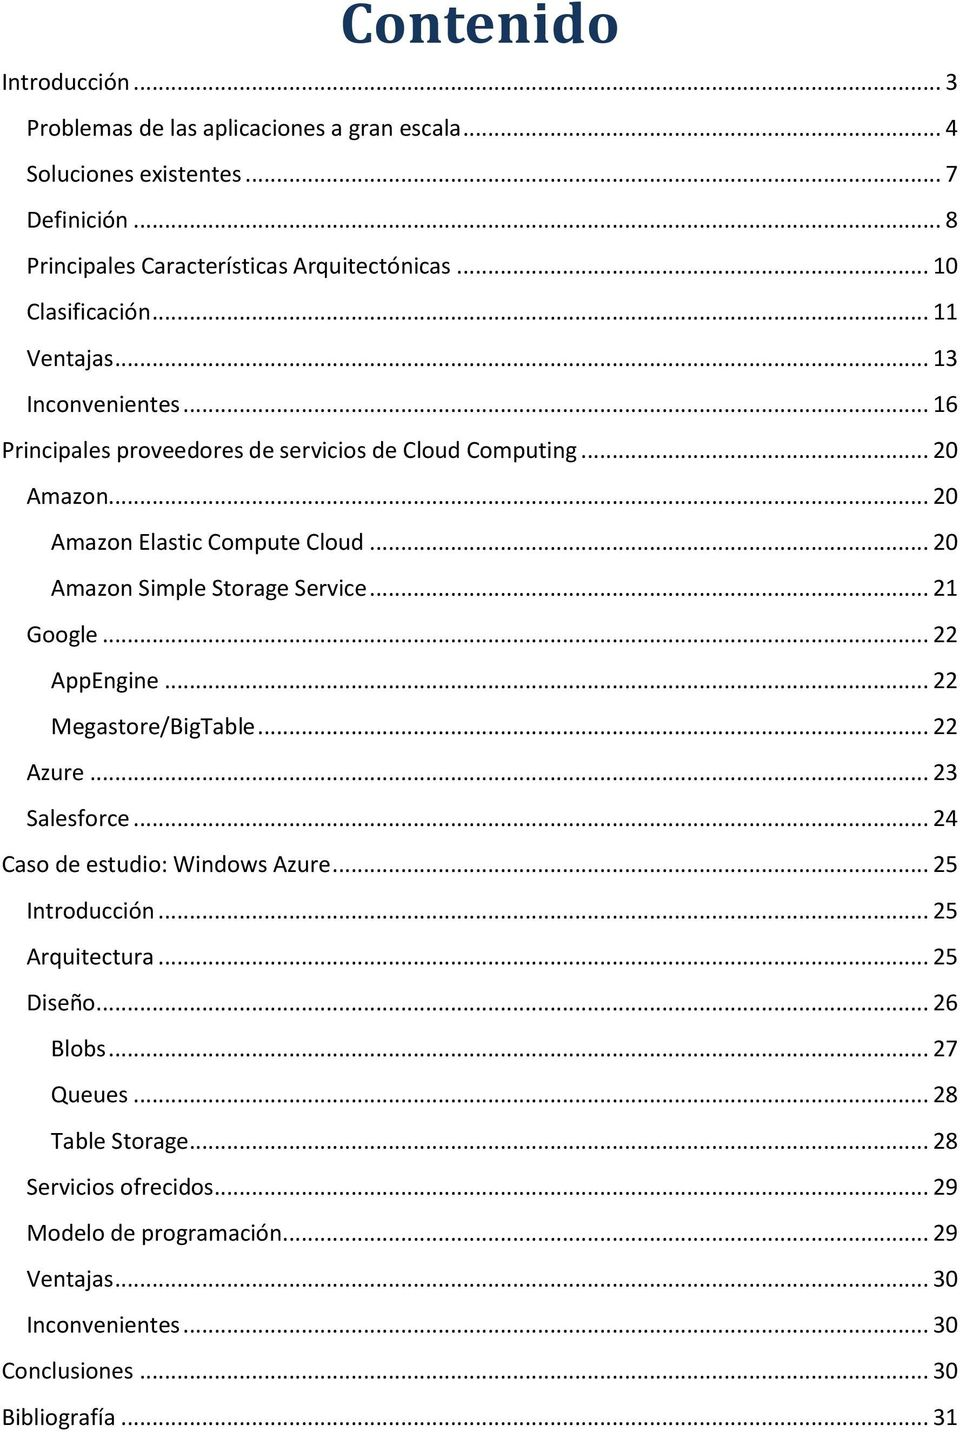 .. 20 Amazon Simple Storage Service... 21 Google... 22 AppEngine... 22 Megastore/BigTable... 22 Azure... 23 Salesforce... 24 Caso de estudio: Windows Azure... 25 Introducción.